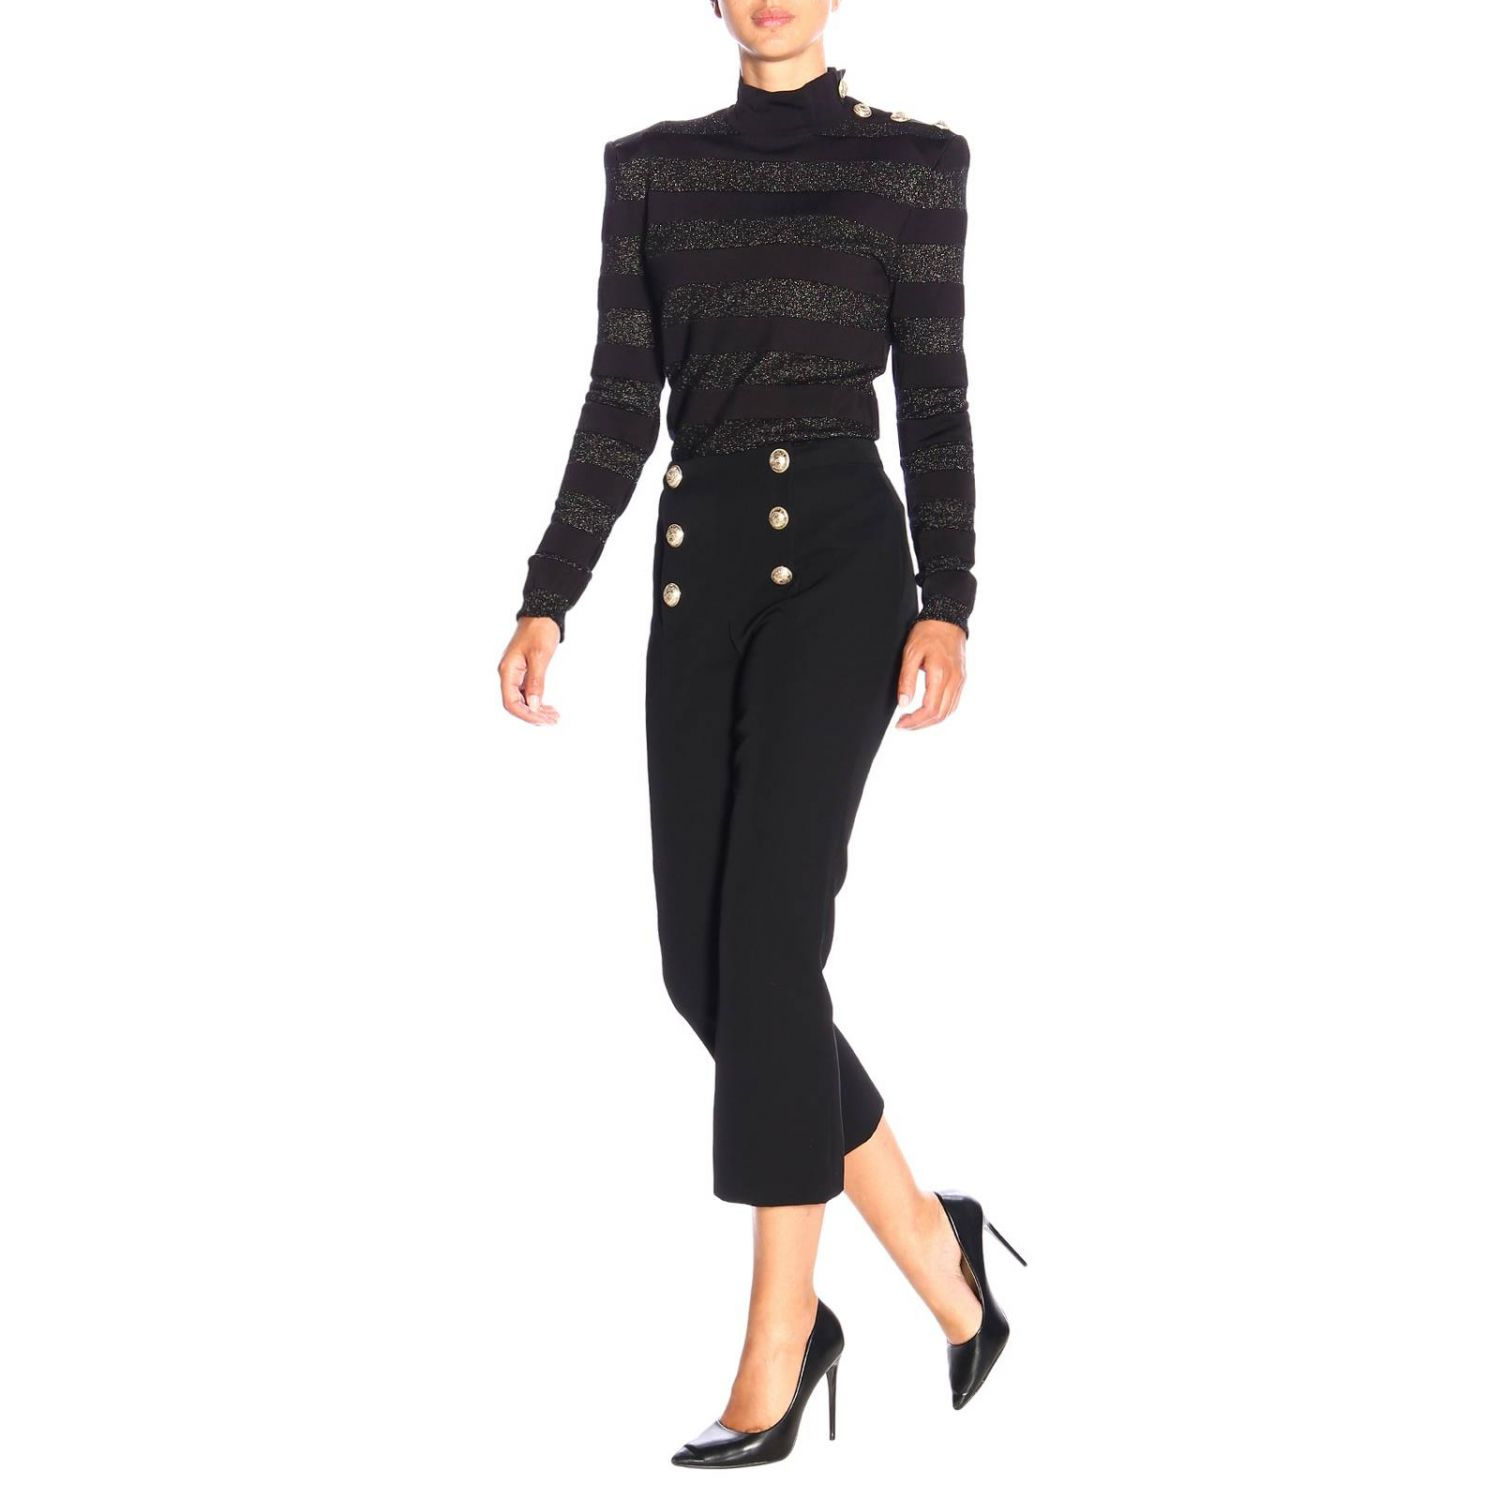 Jumper Balmain: Balmain turtleneck sweater with lurex bands and jewel buttons black 2